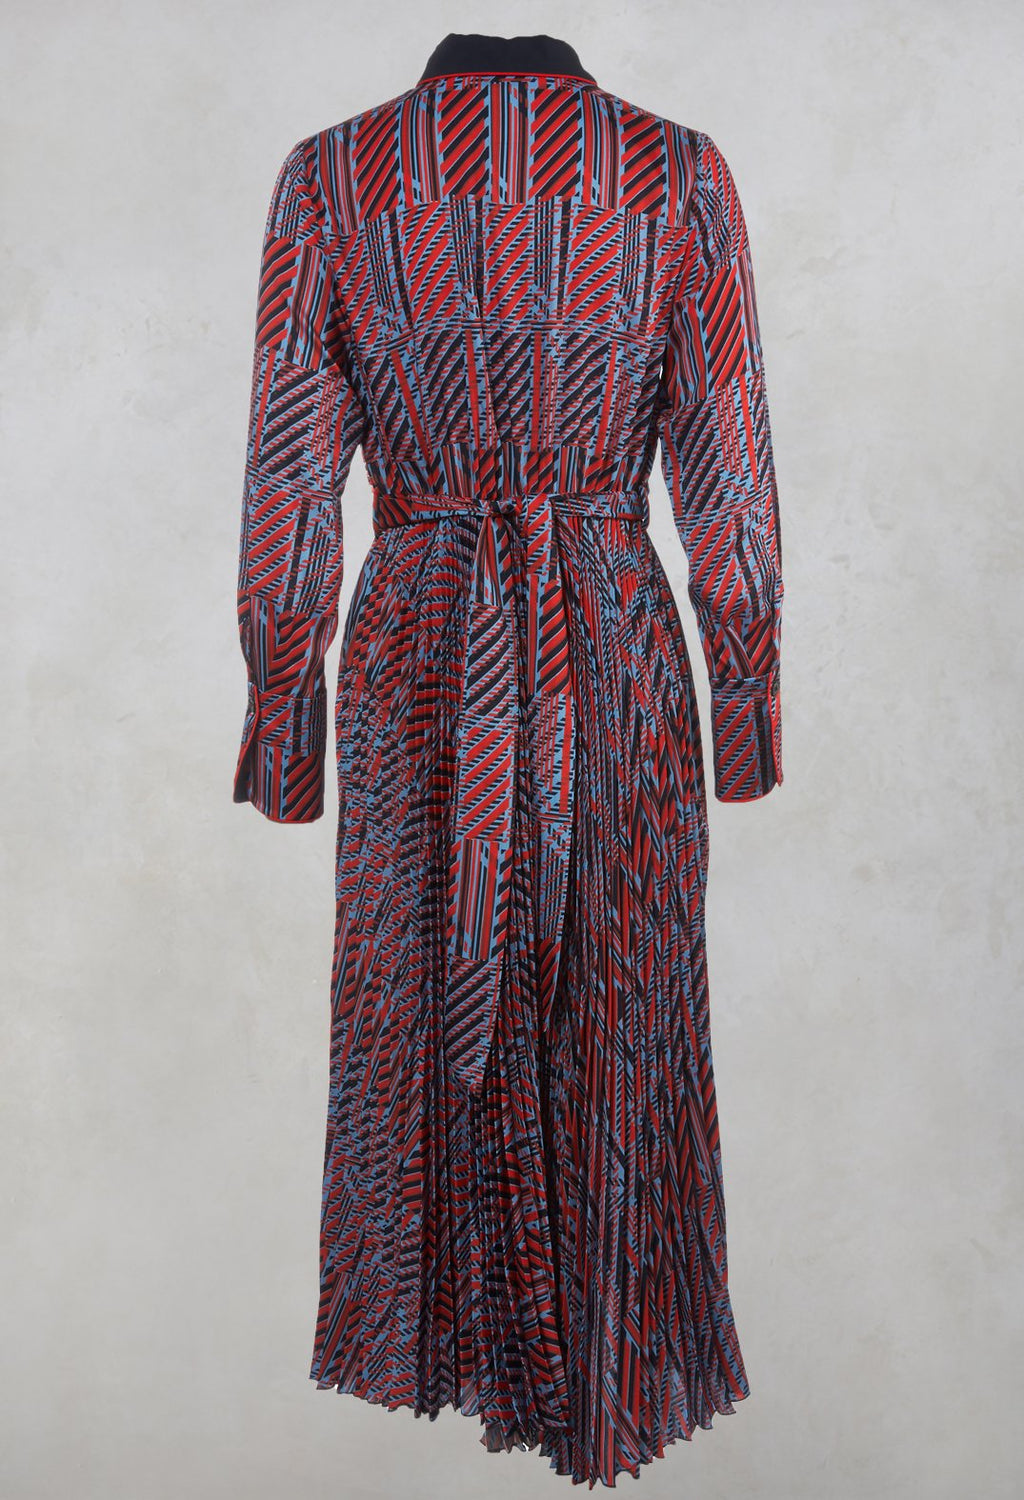 Printed Maxi Dress in Red / Blue